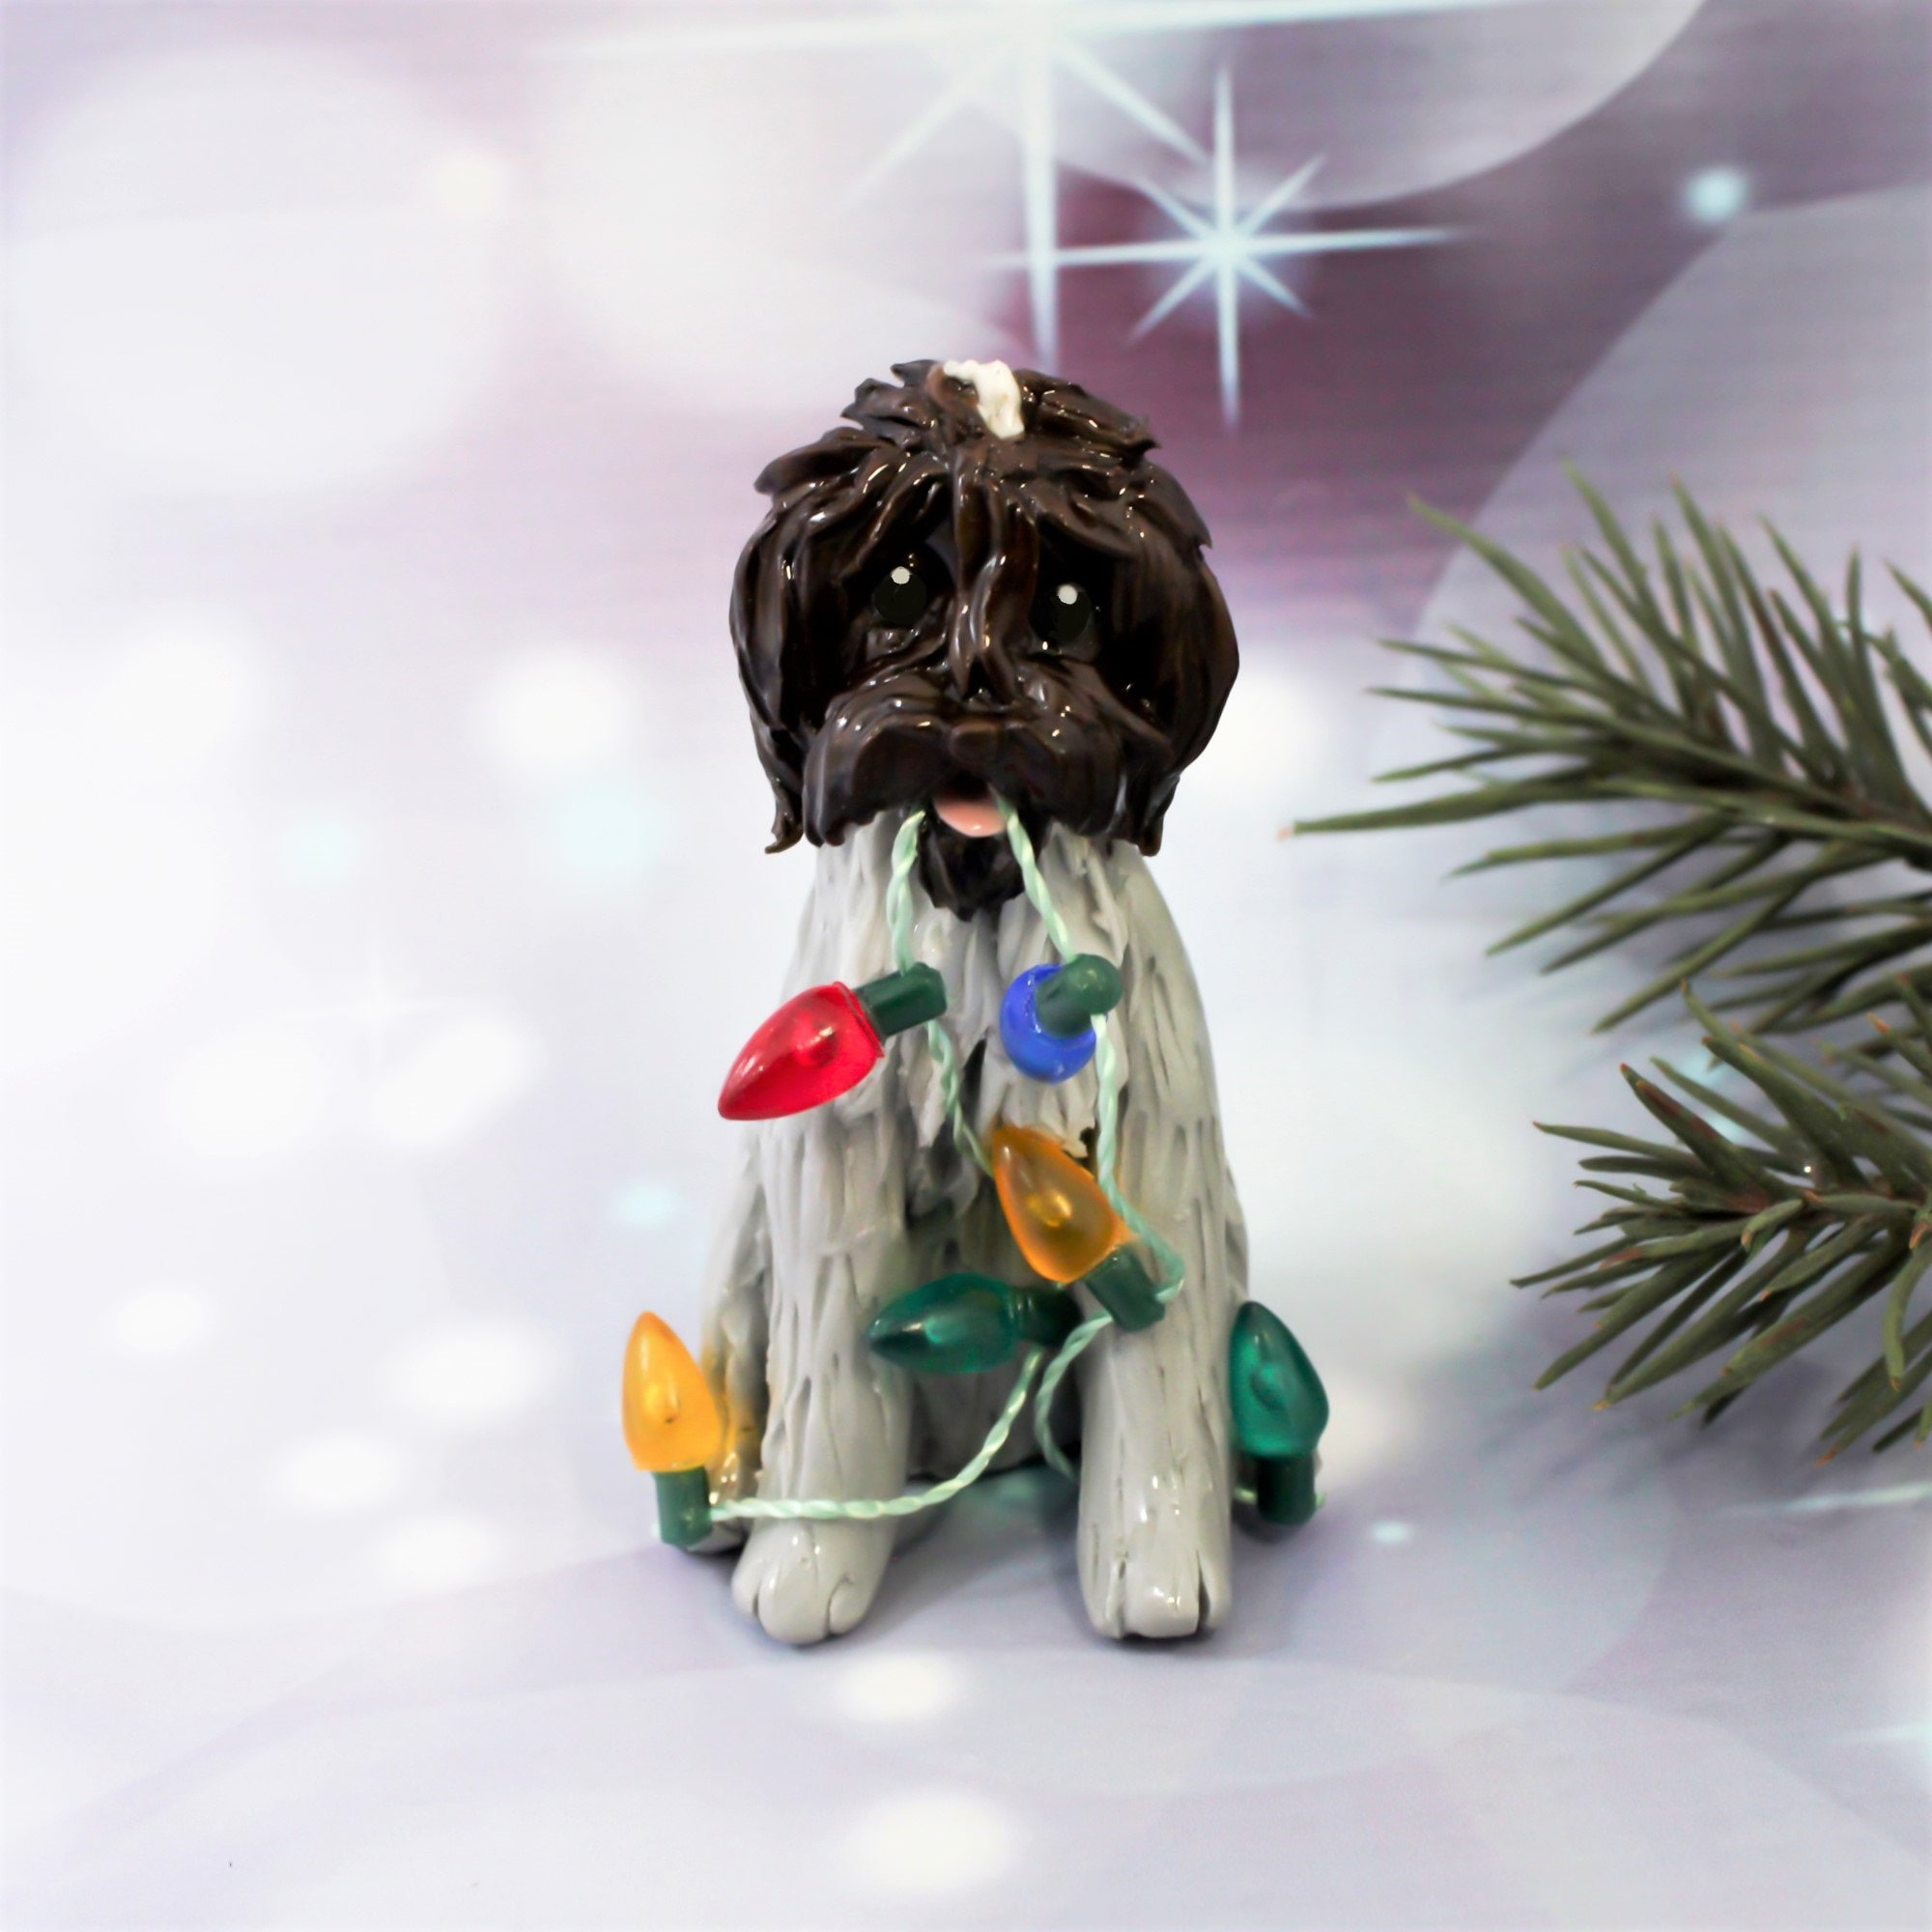 Wirehaired Pointing Griffon Porcelain Christmas Ornament ...